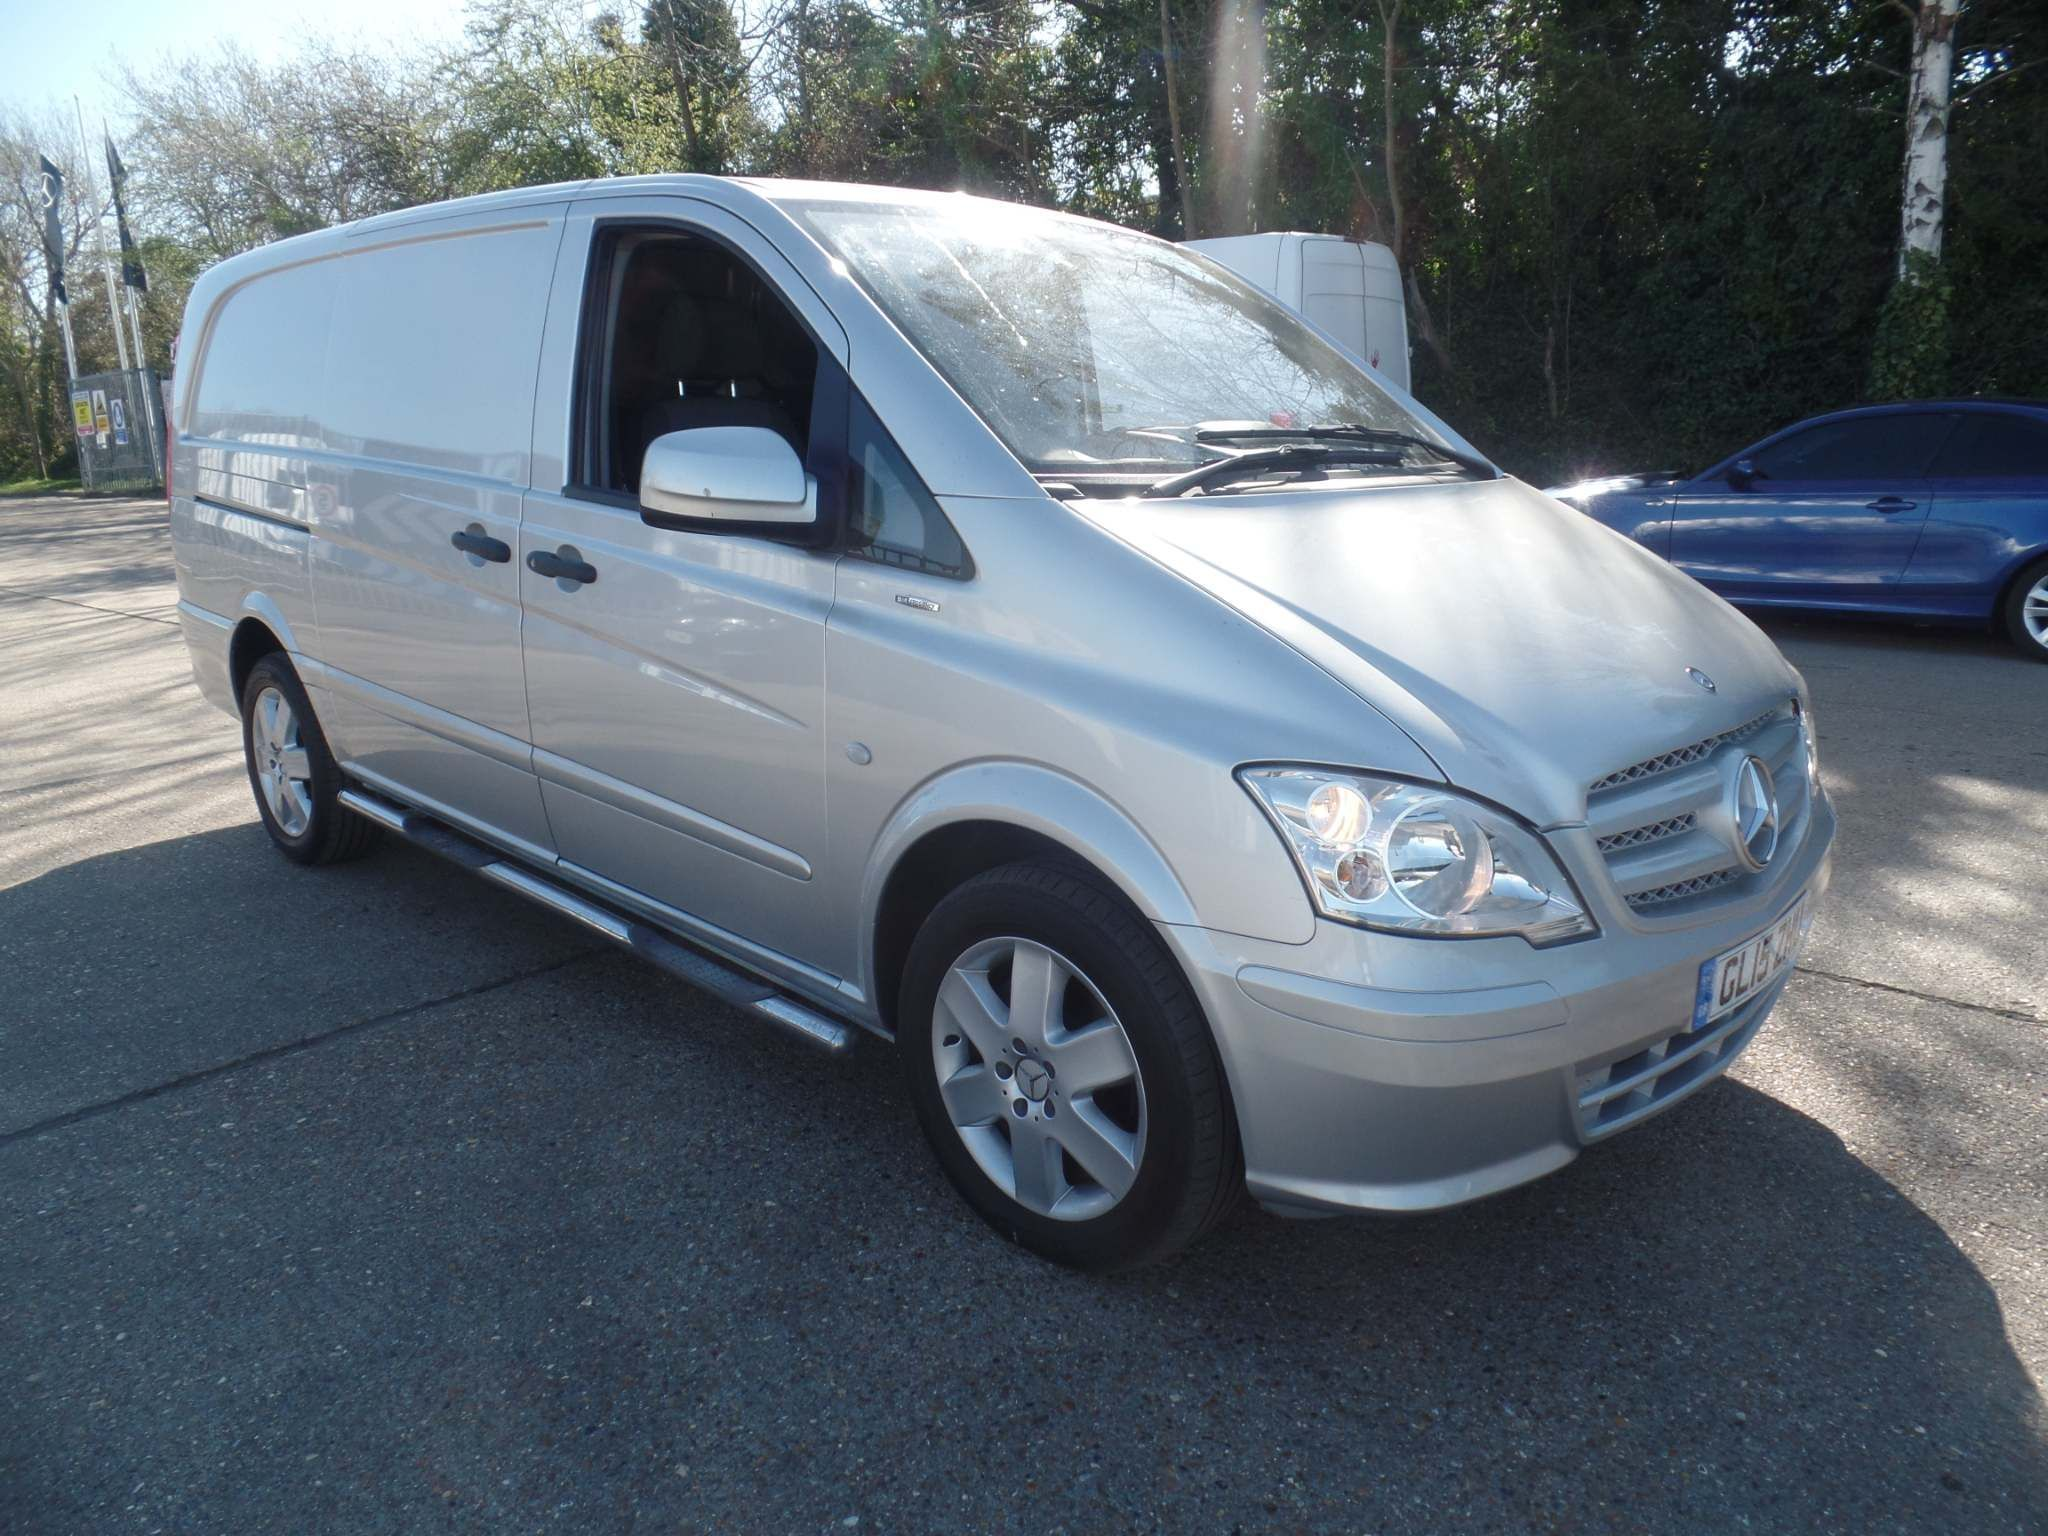 Mercedes-Benz Vito 2.1 116CDI BlueEFFICIENCY Long Panel Van 5dr (EU5) - image 2